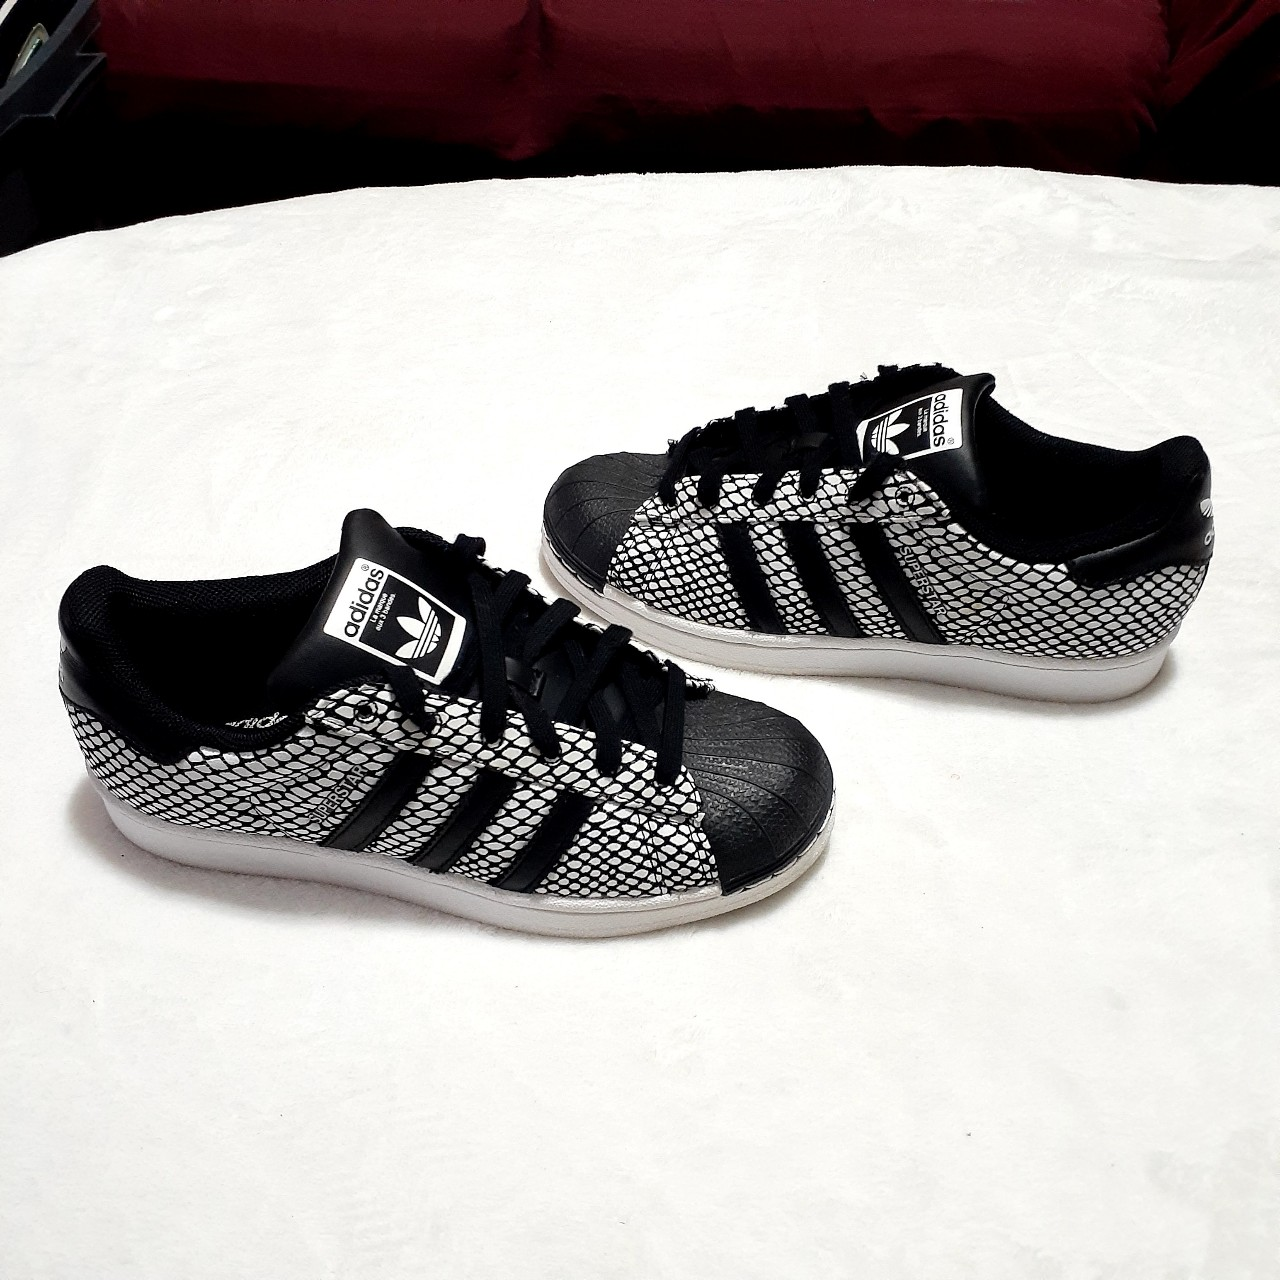 Product Image 1 - Adidas Superstar Black and White